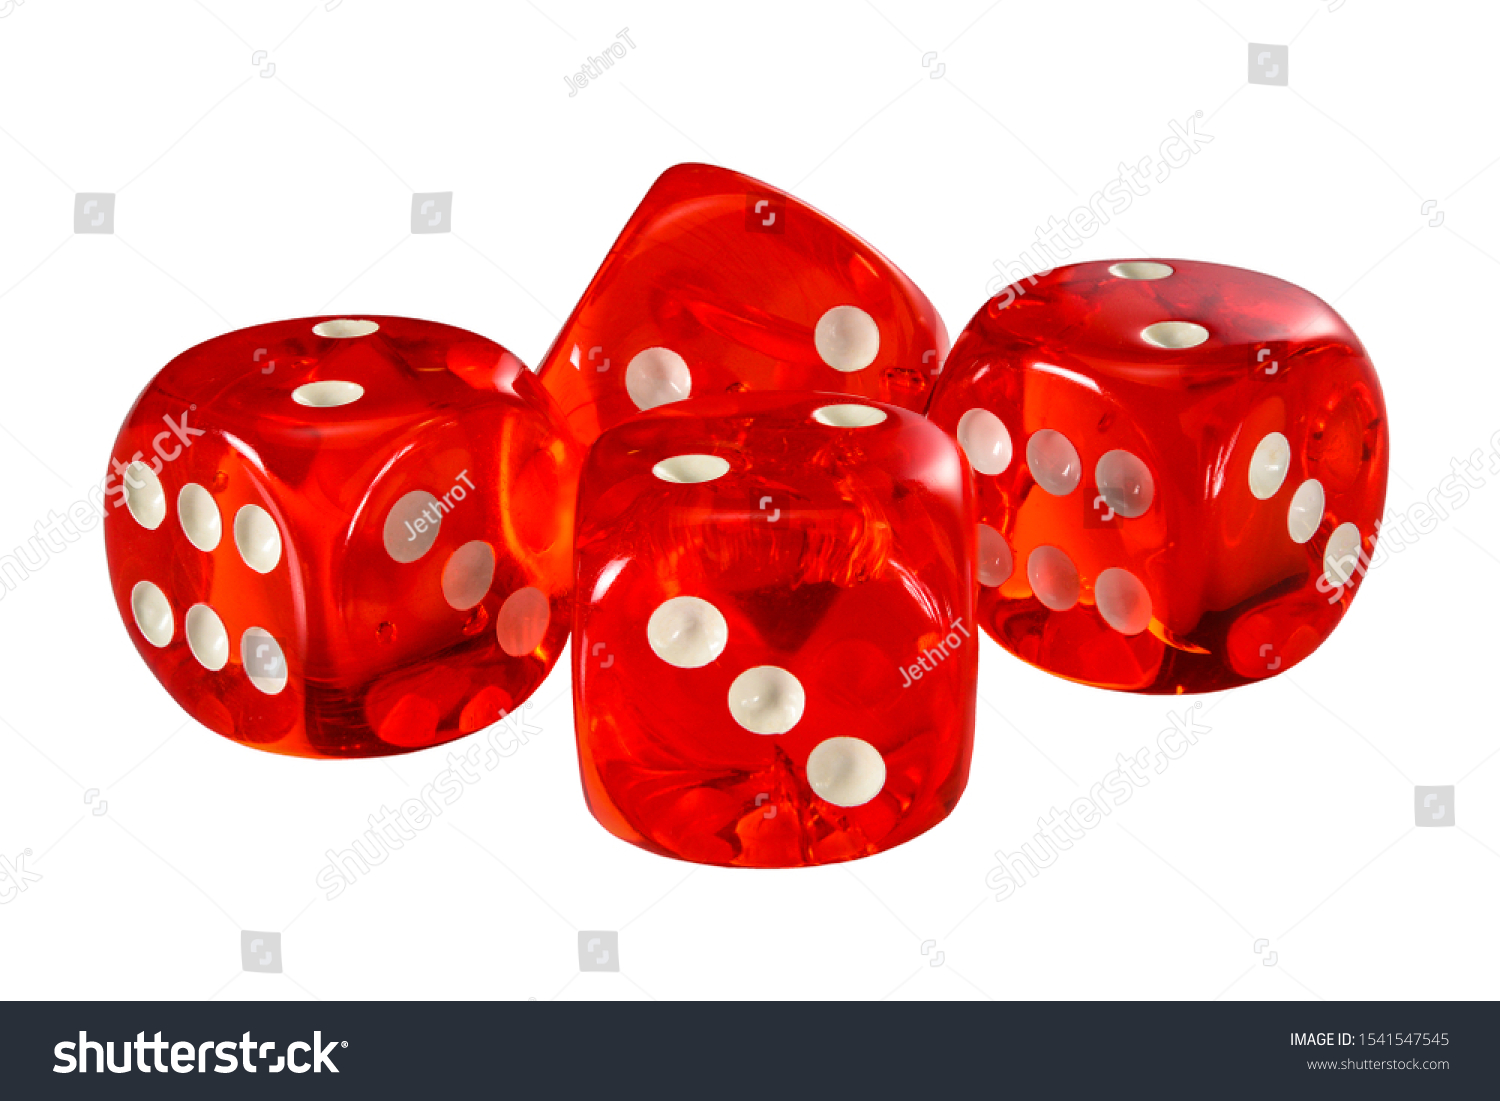 Red acrylic transparent dice for games. Four gambling translucent dices isolated on white background without shadow, macro close up high resolution. #1541547545